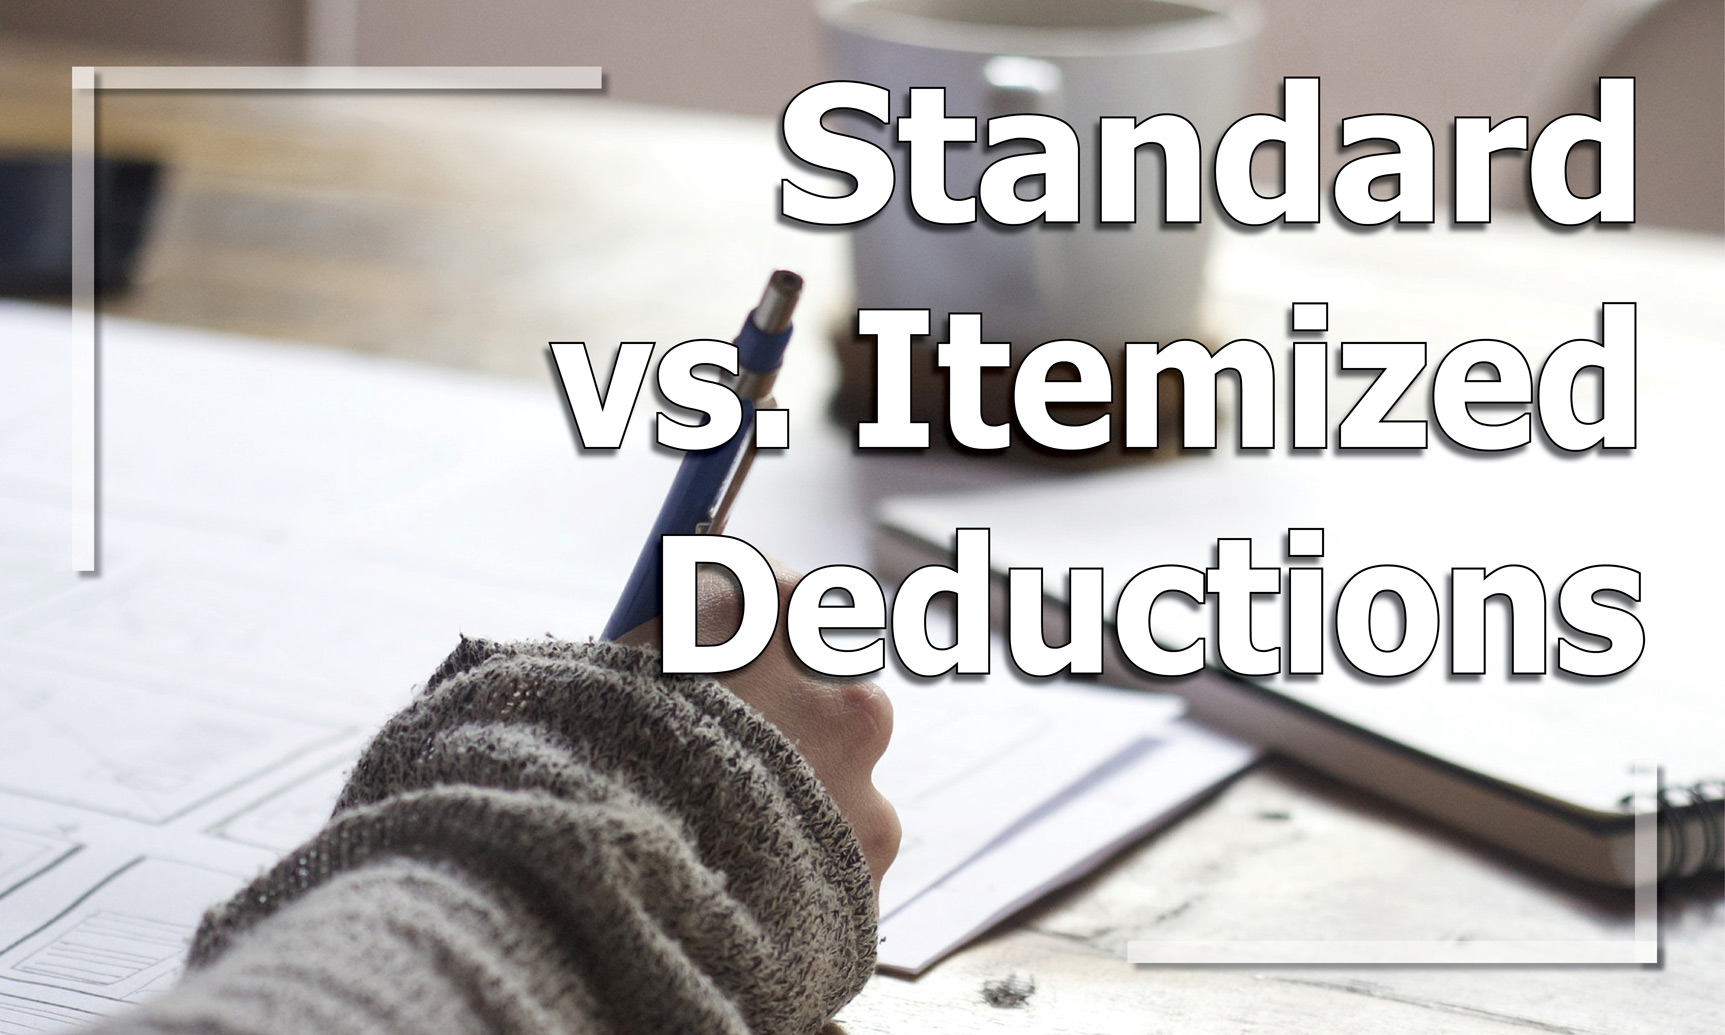 Standard vs Itemized Deductions